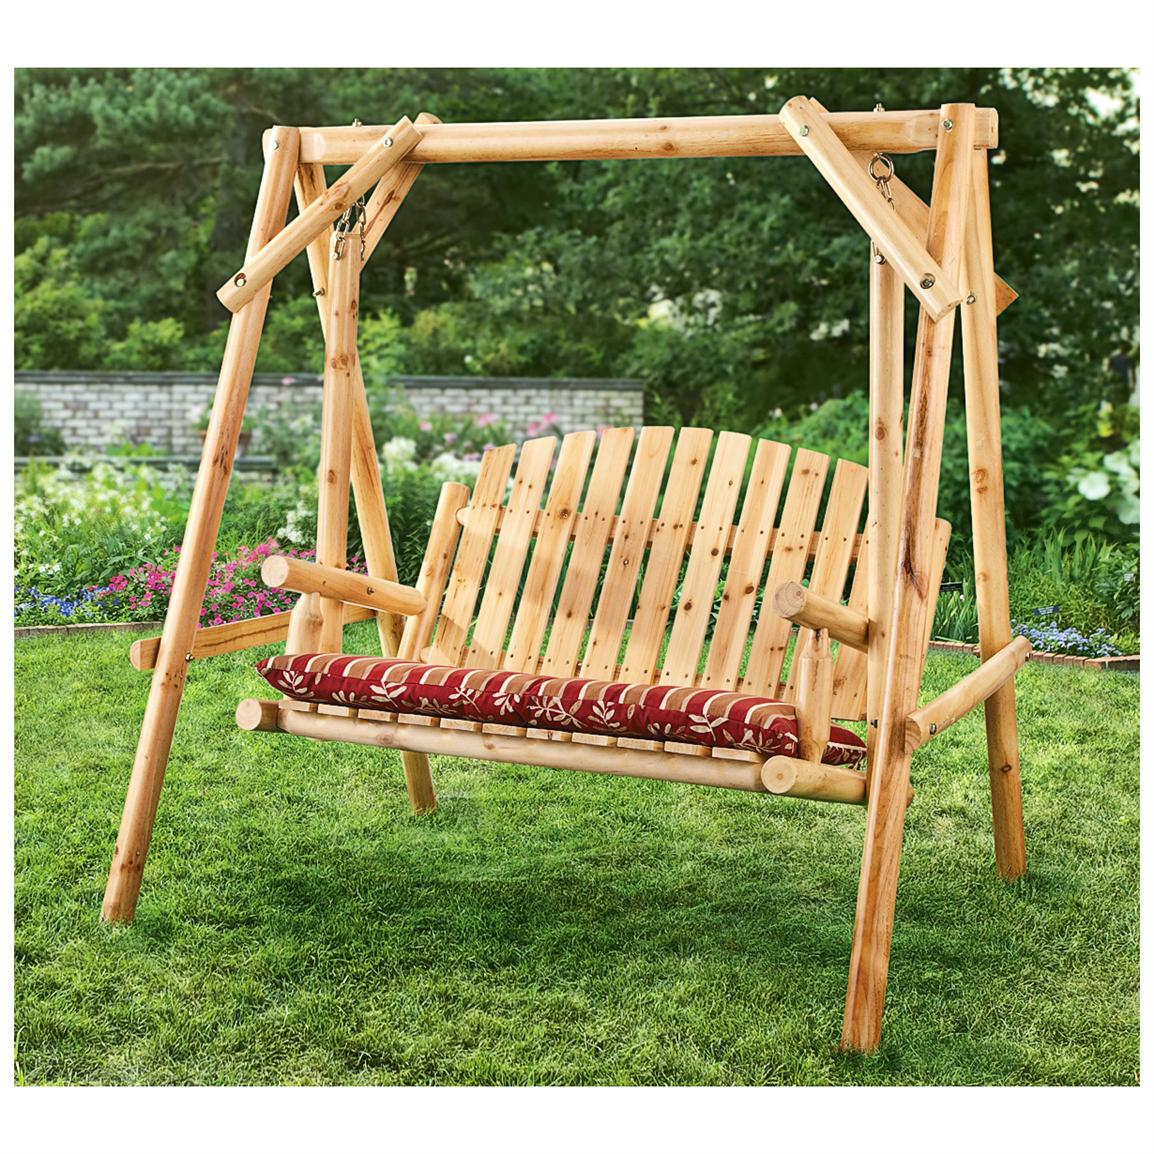 Stonegate Designs Fir Wood Log Fire Pit Curved Bench